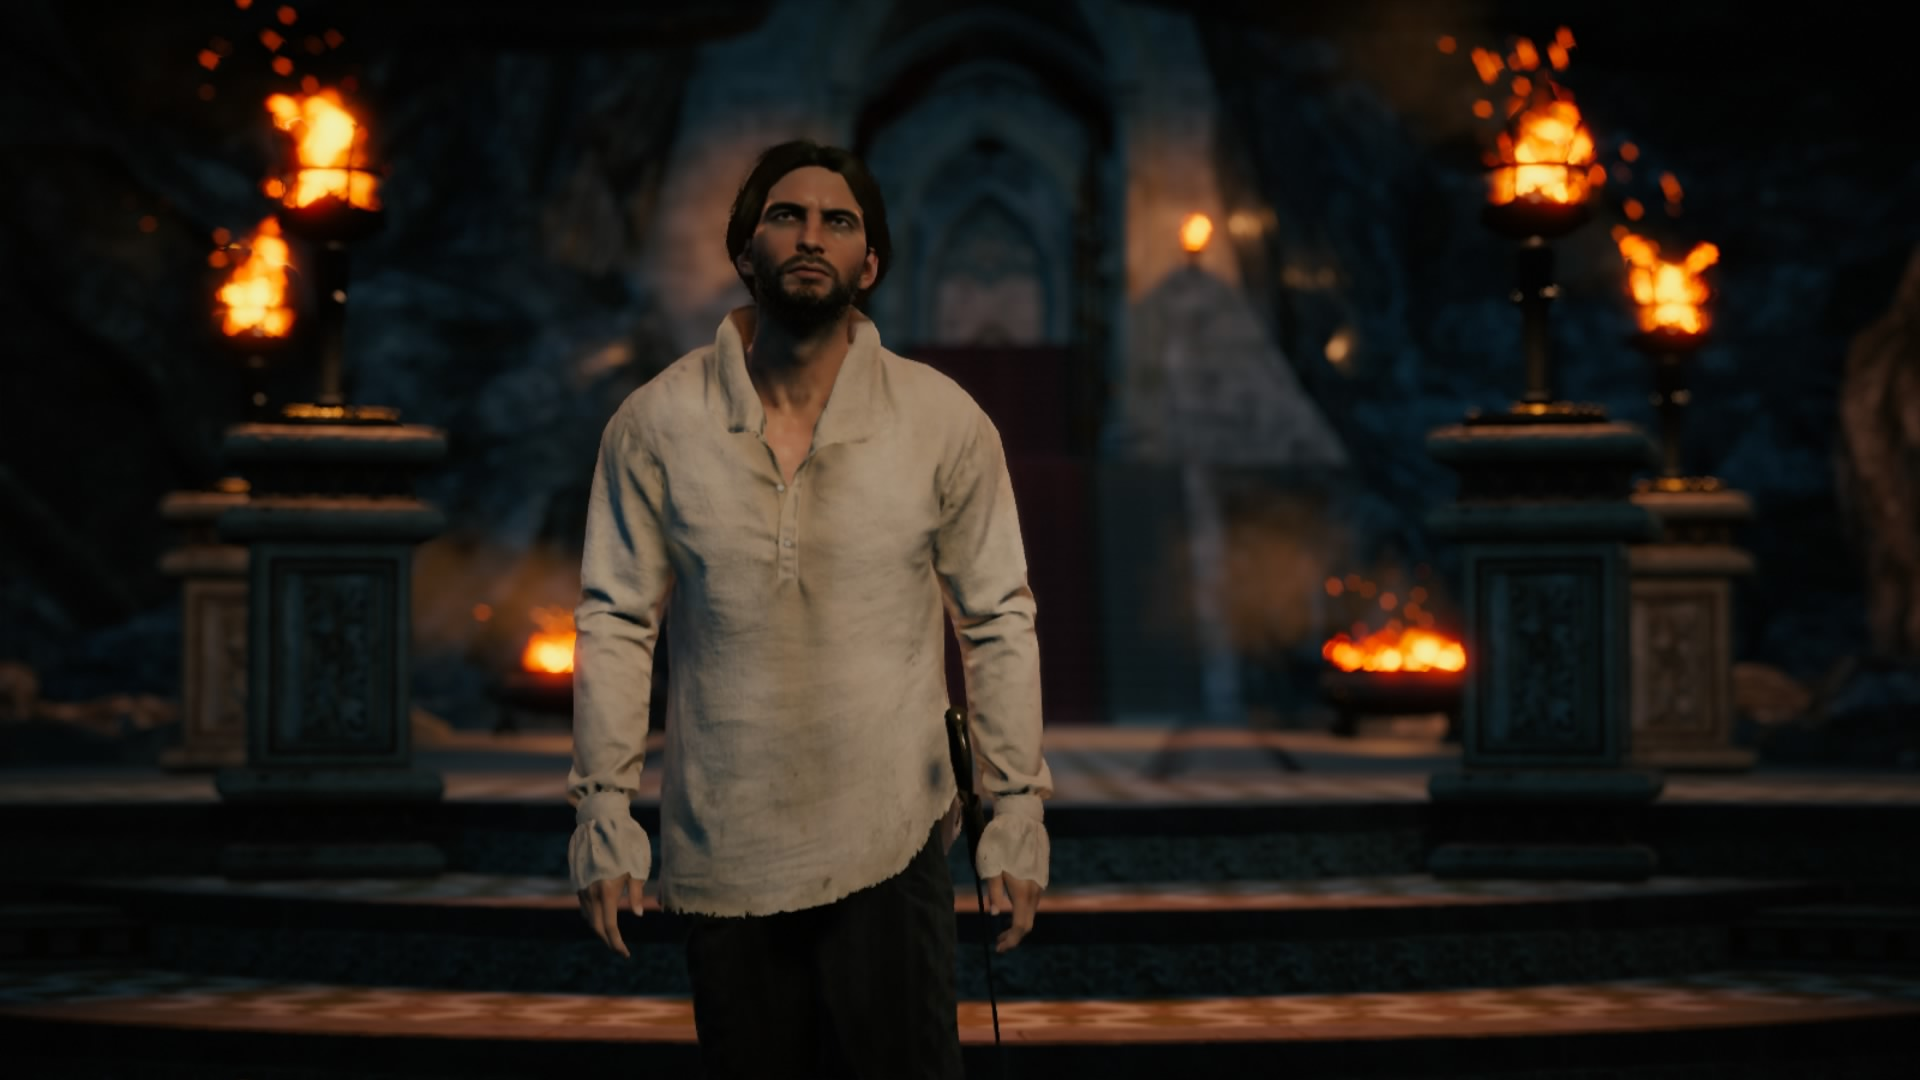 In-game obrázky z Assassin's Creed: Unity 101839